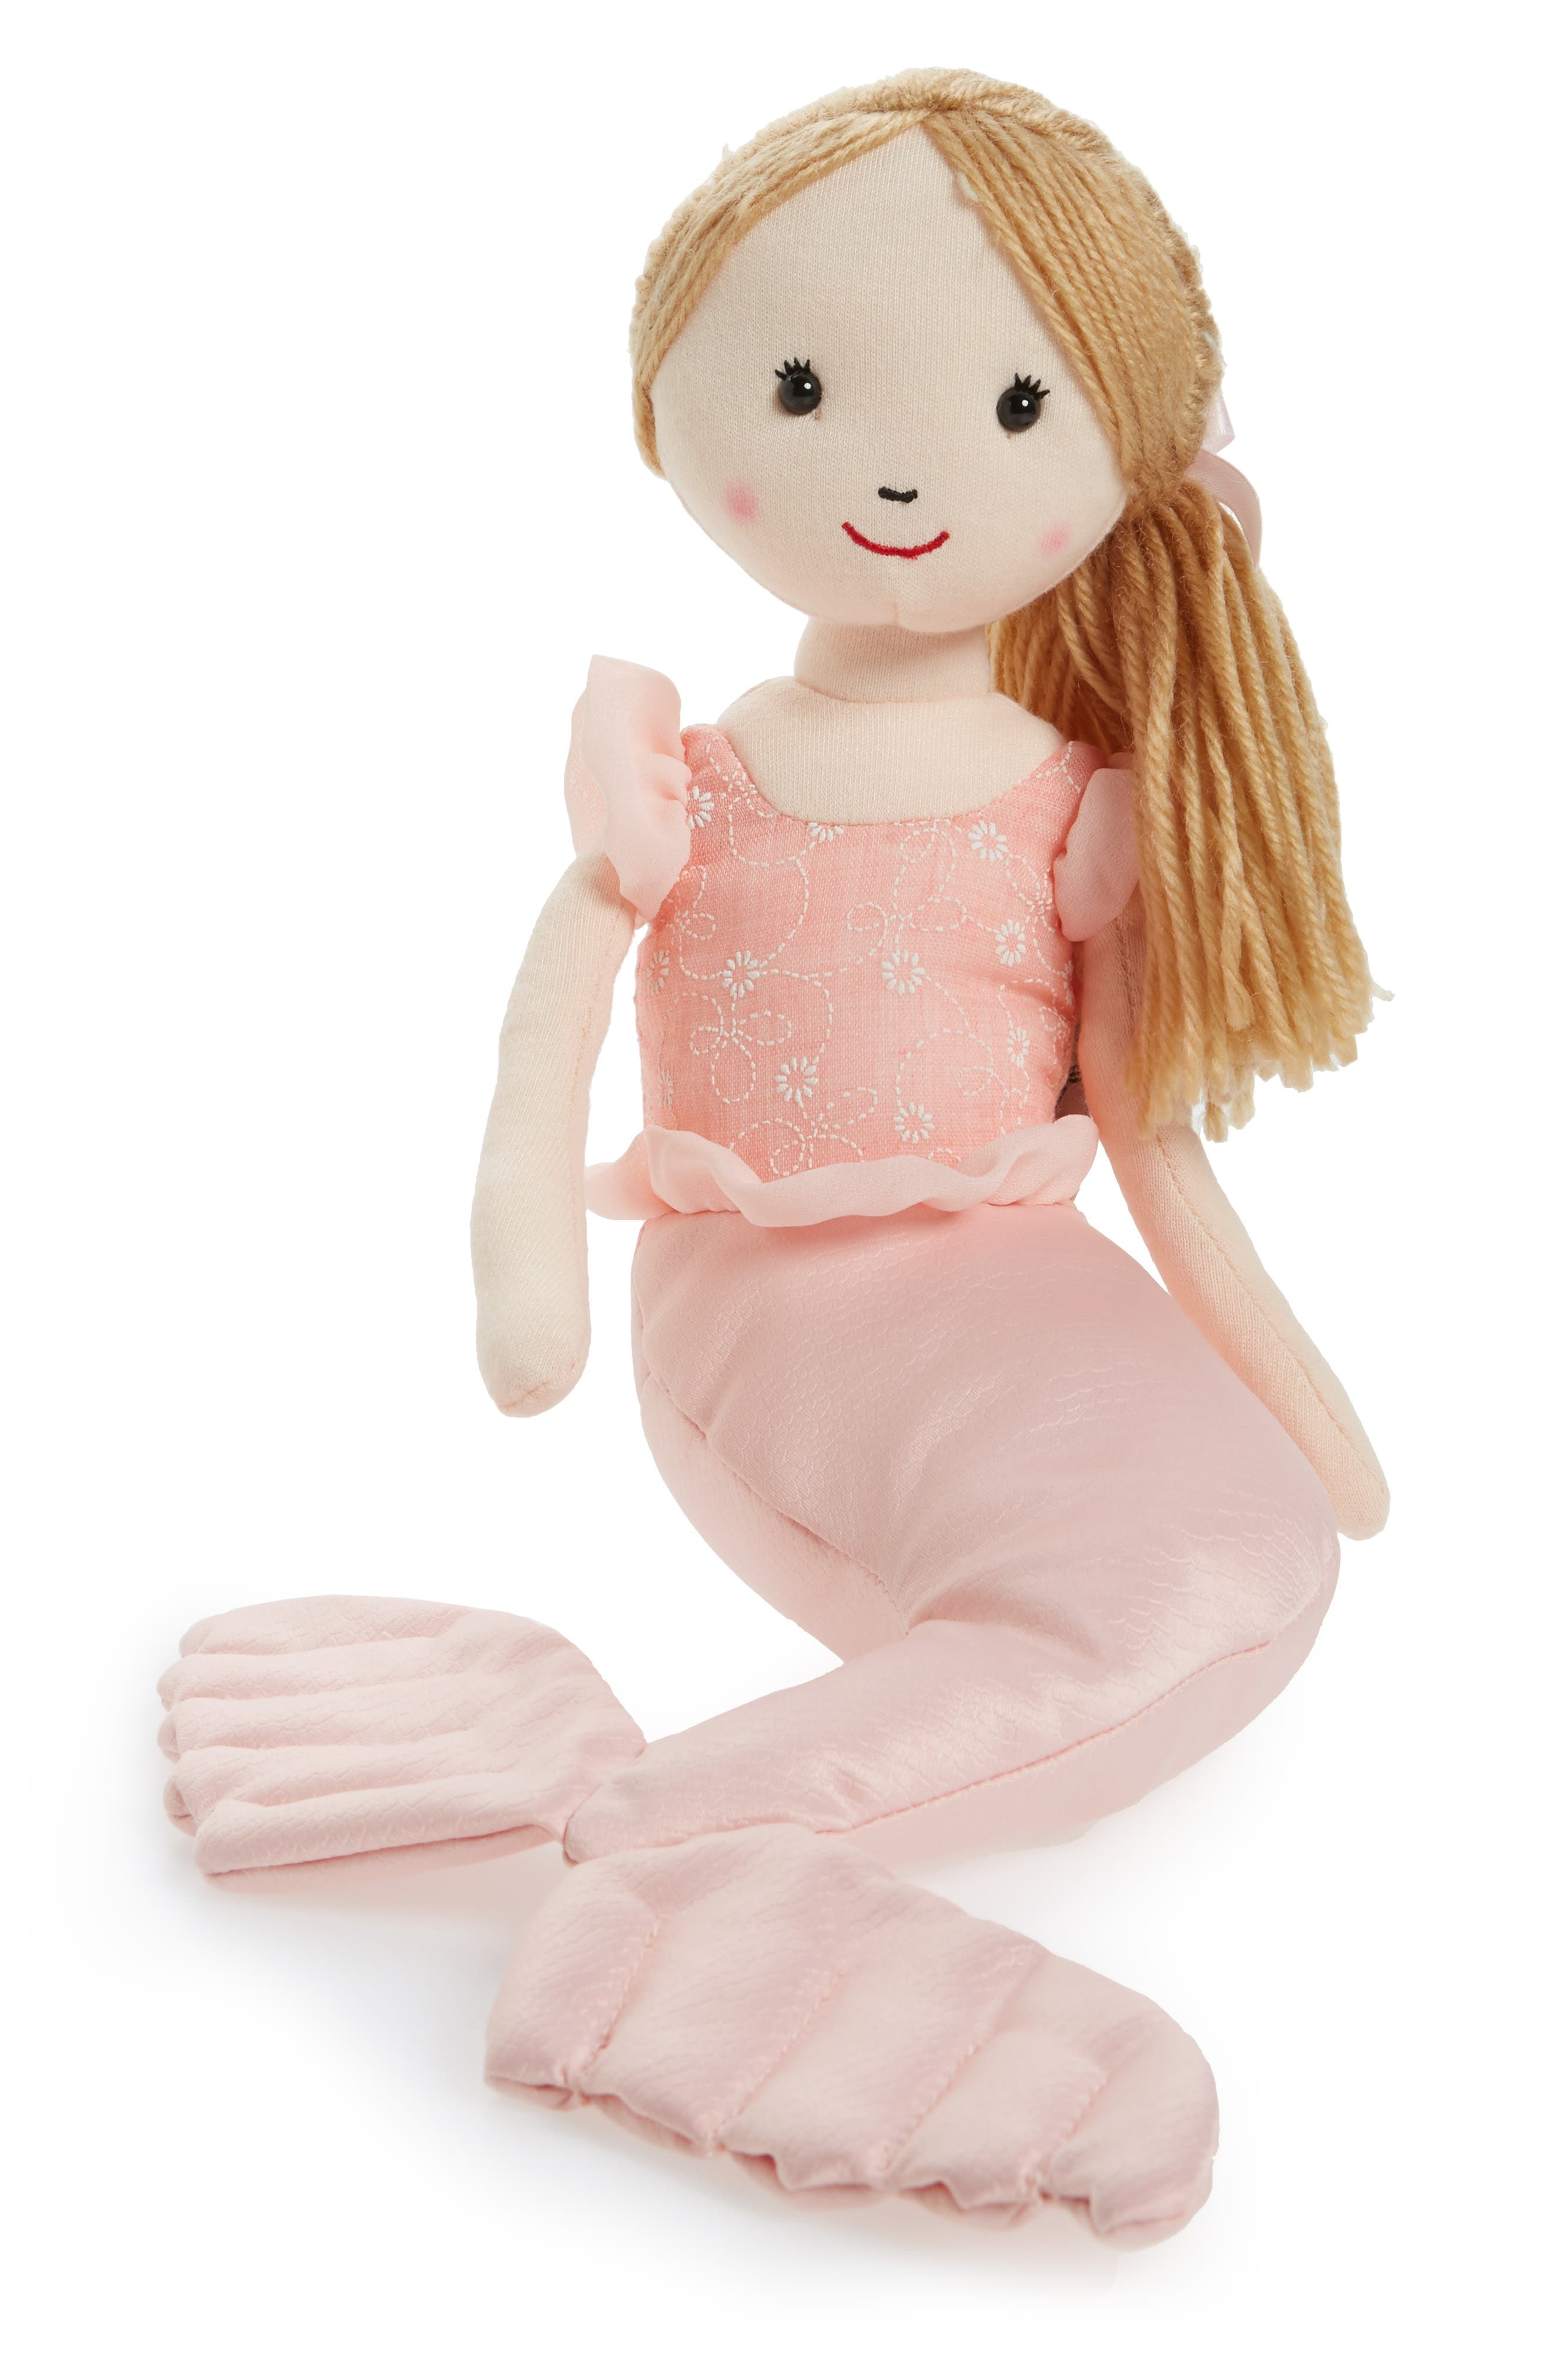 Shellbelle - Mermaid Millie Stuffed Toy,                         Main,                         color, 650